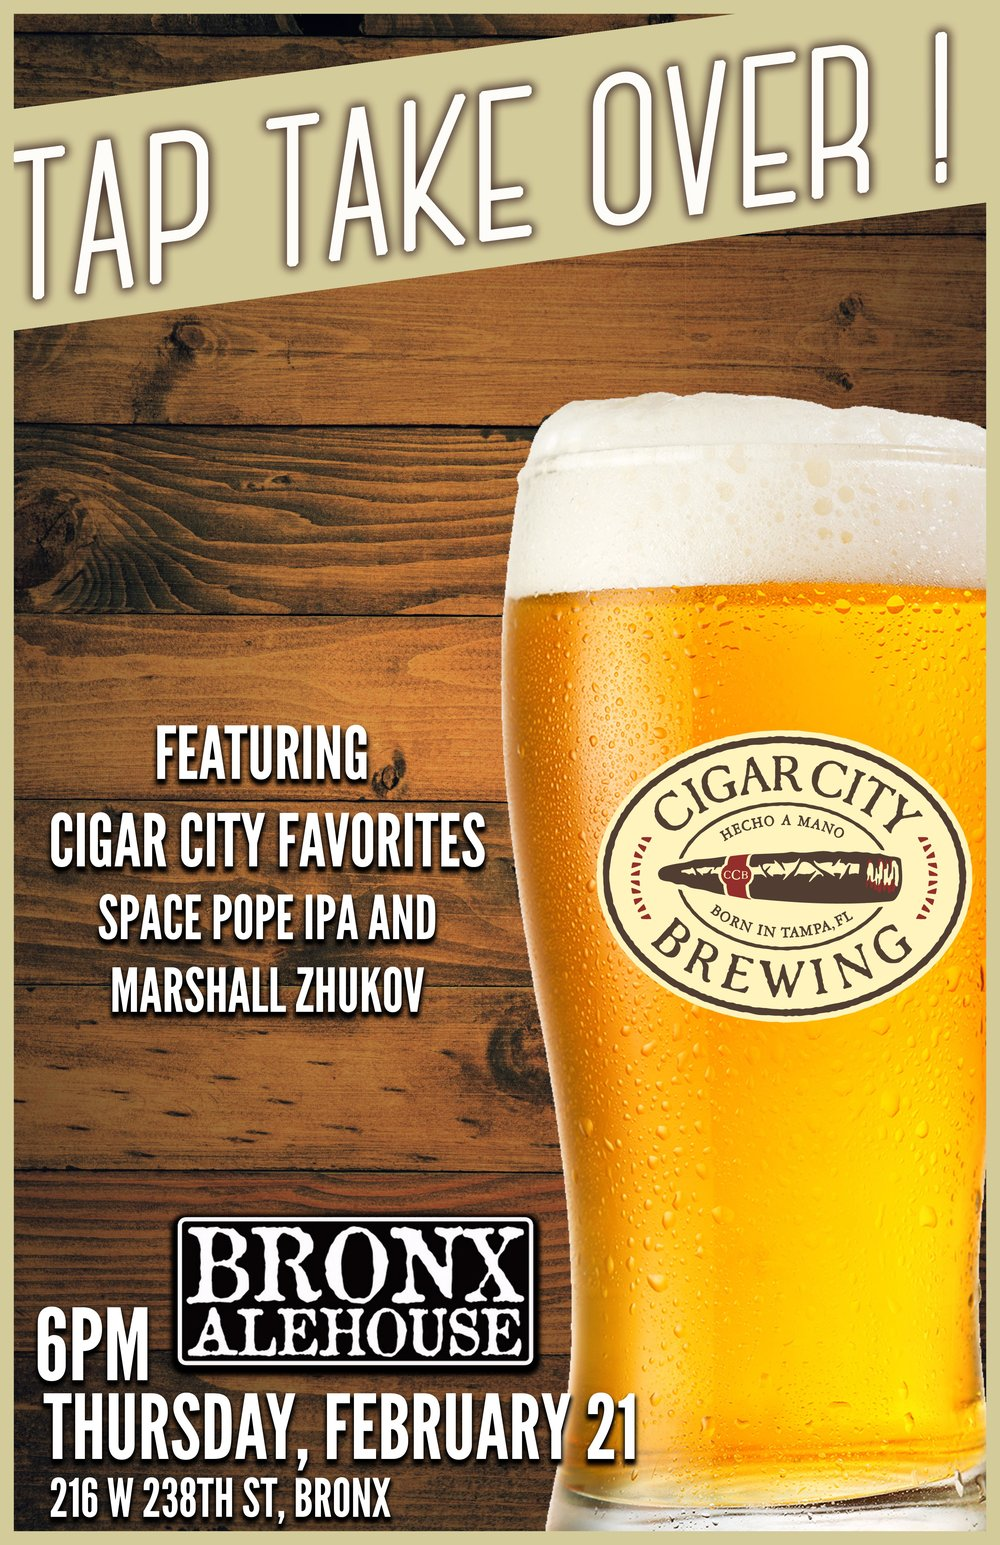 BRONX ALE HOUSE_CIGAR CITY TAP TAKE OVER.jpg